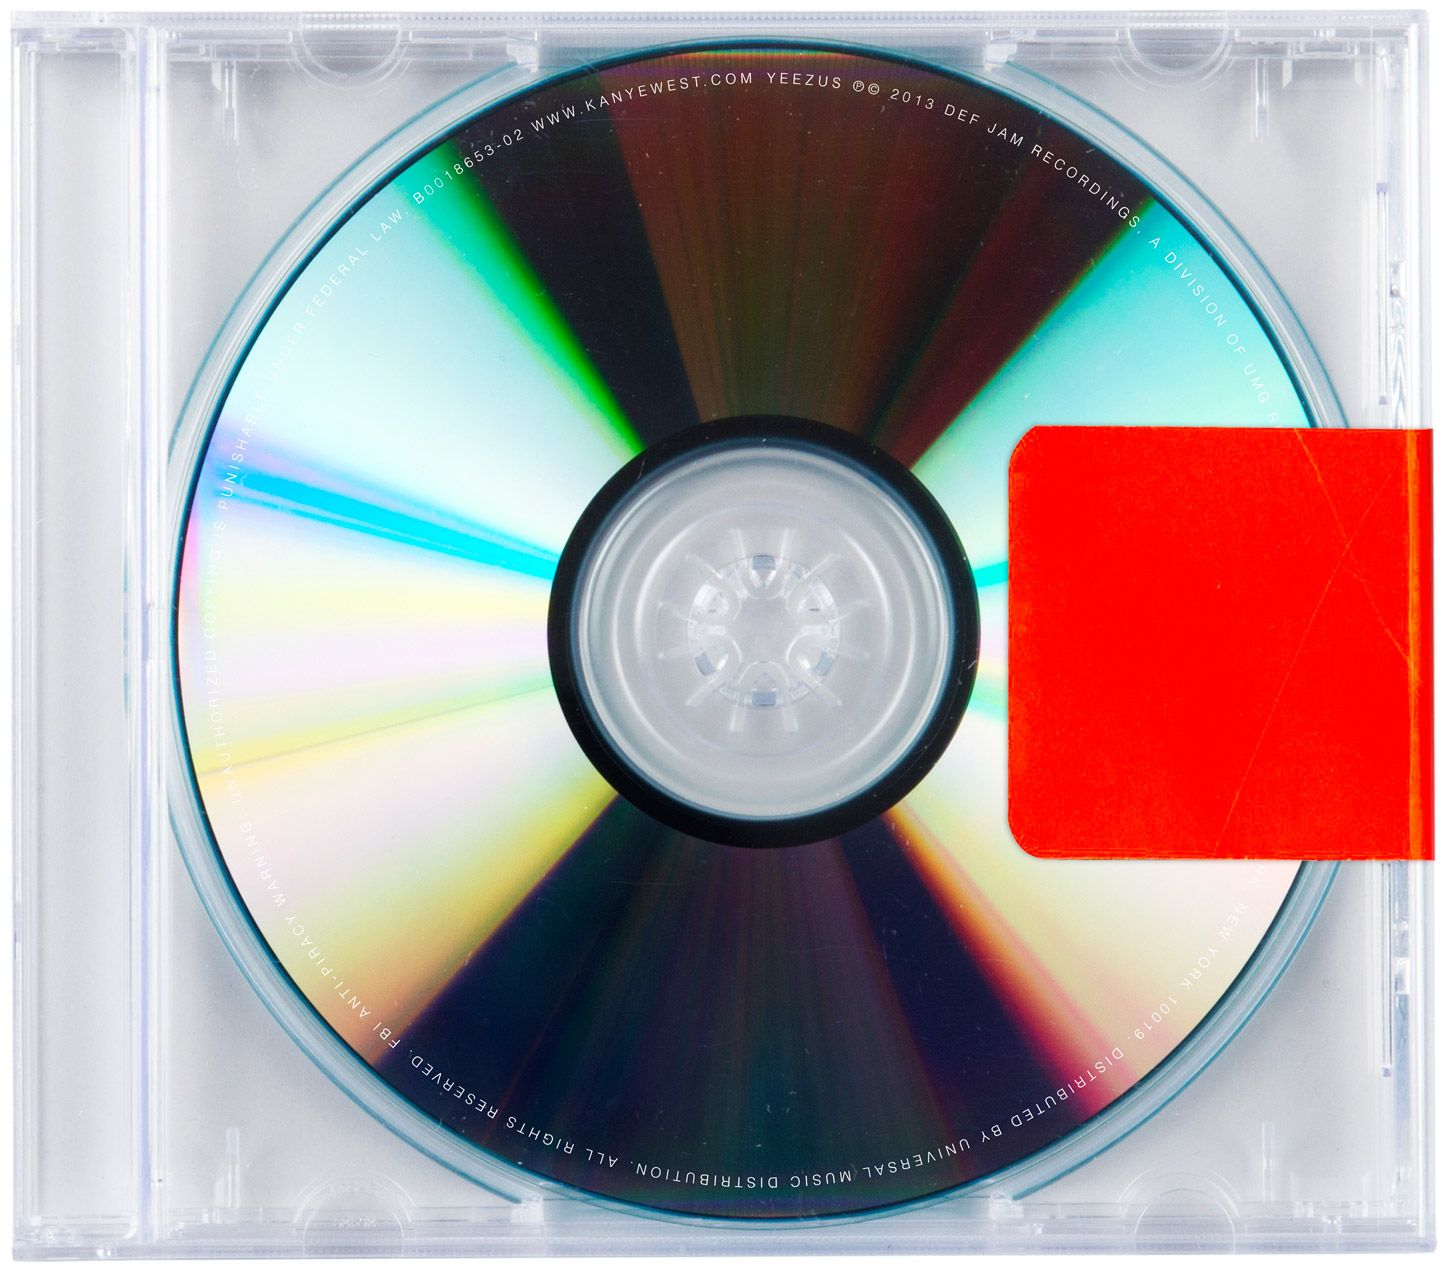 A Guide To Kanye West S Yeezus Rap Album Covers Kanye West Yeezus Kanye West Albums